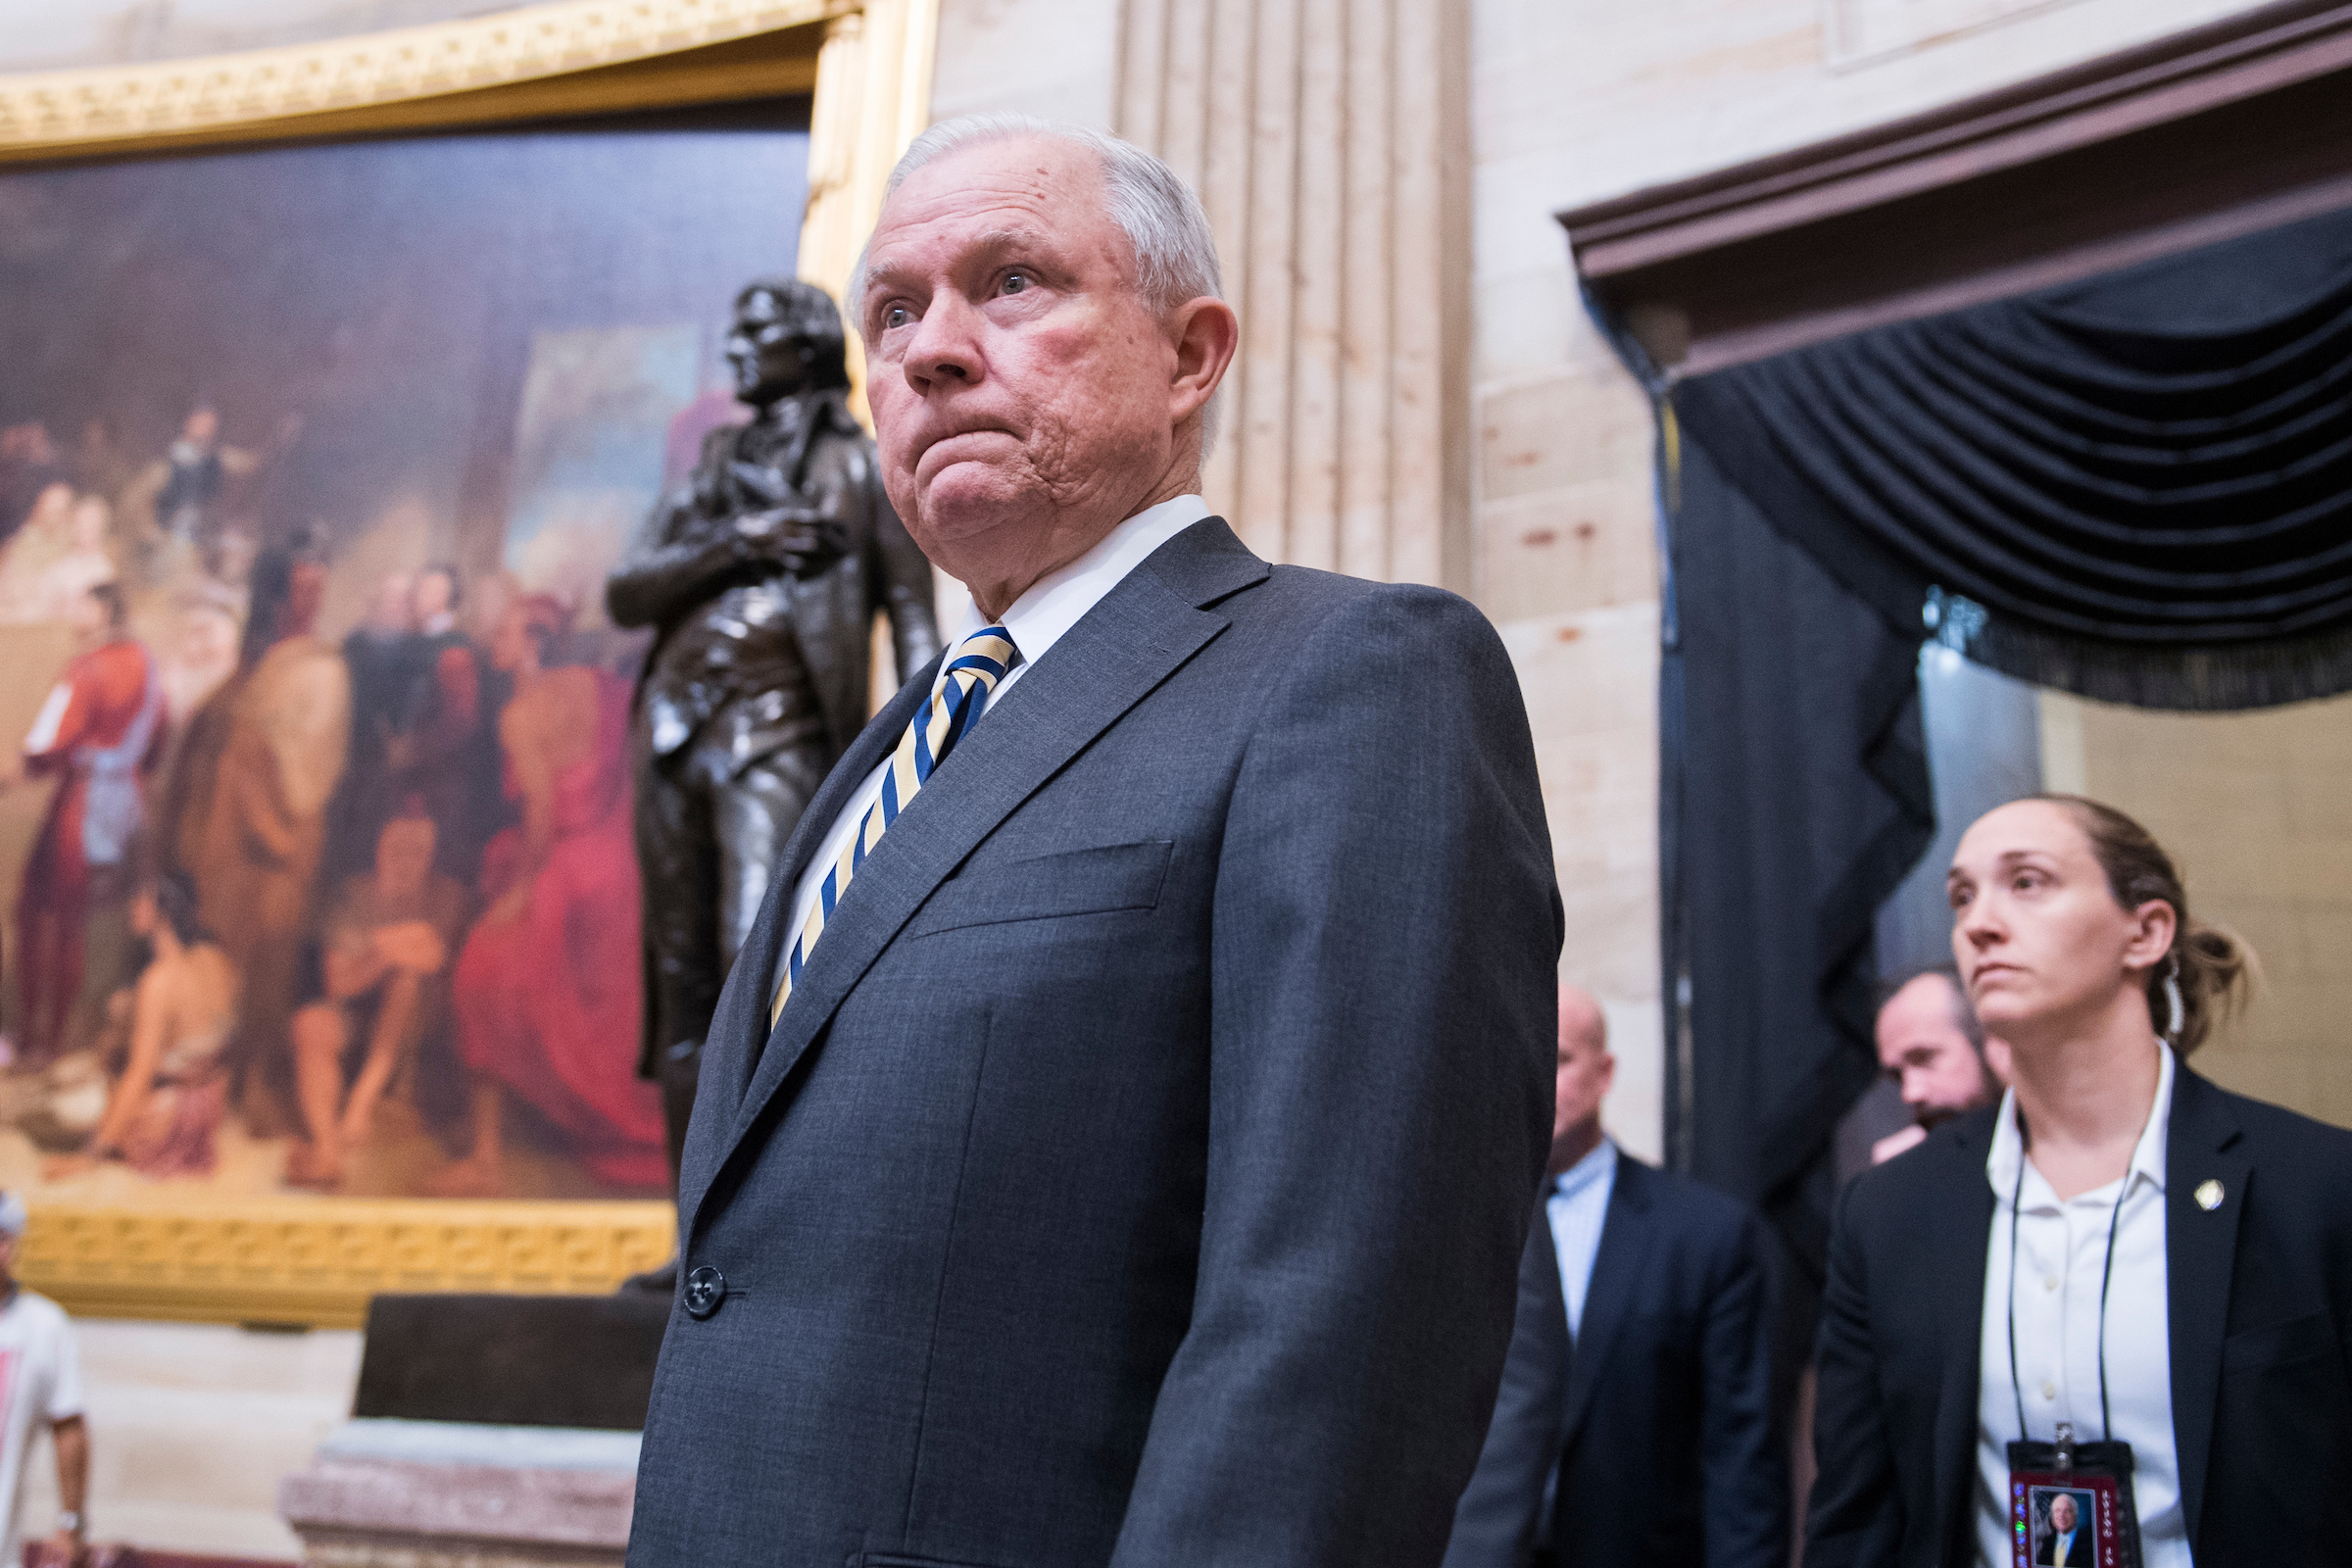 UNITED STATES - AUGUST 31: Attorney General Jeff Sessions pays respects to the late Sen. John McCain, R-Ariz., as the senator lies in state in the Capitol rotunda on August 31, 2018. (Photo By Tom Williams/CQ Roll Call)